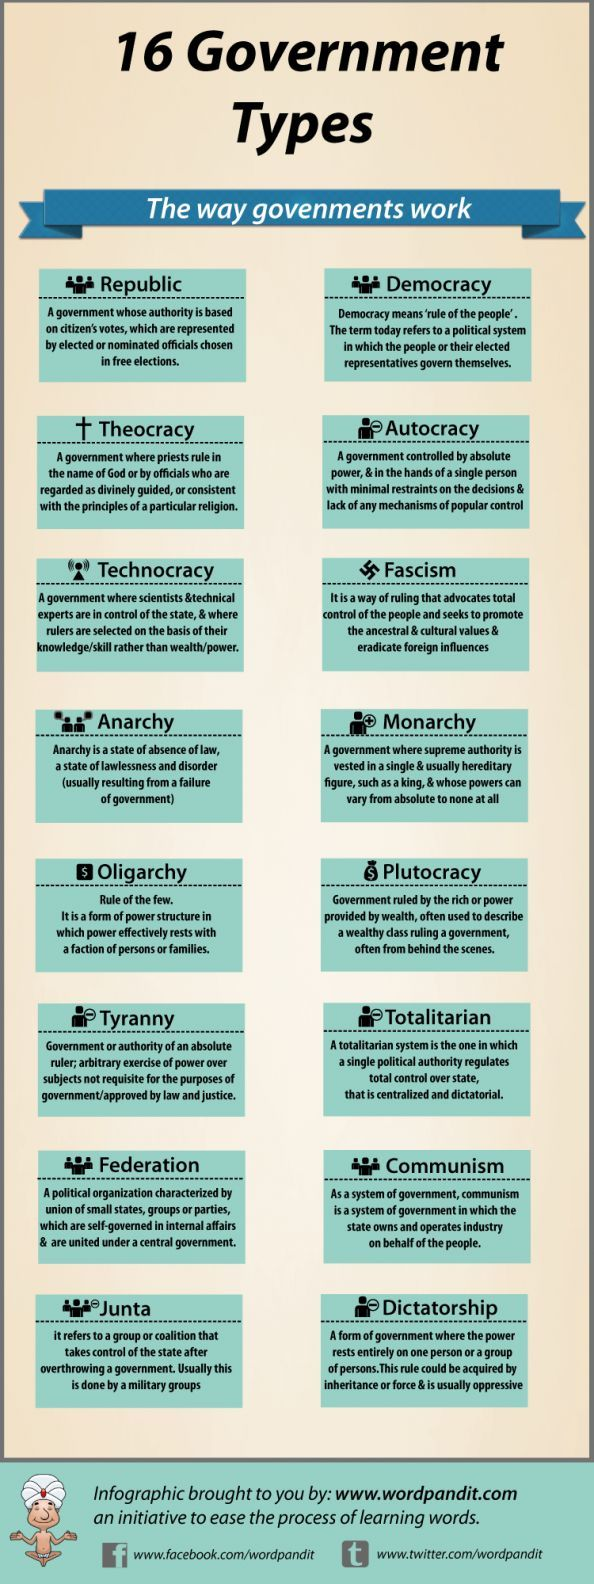 16 Types of Government Infographic